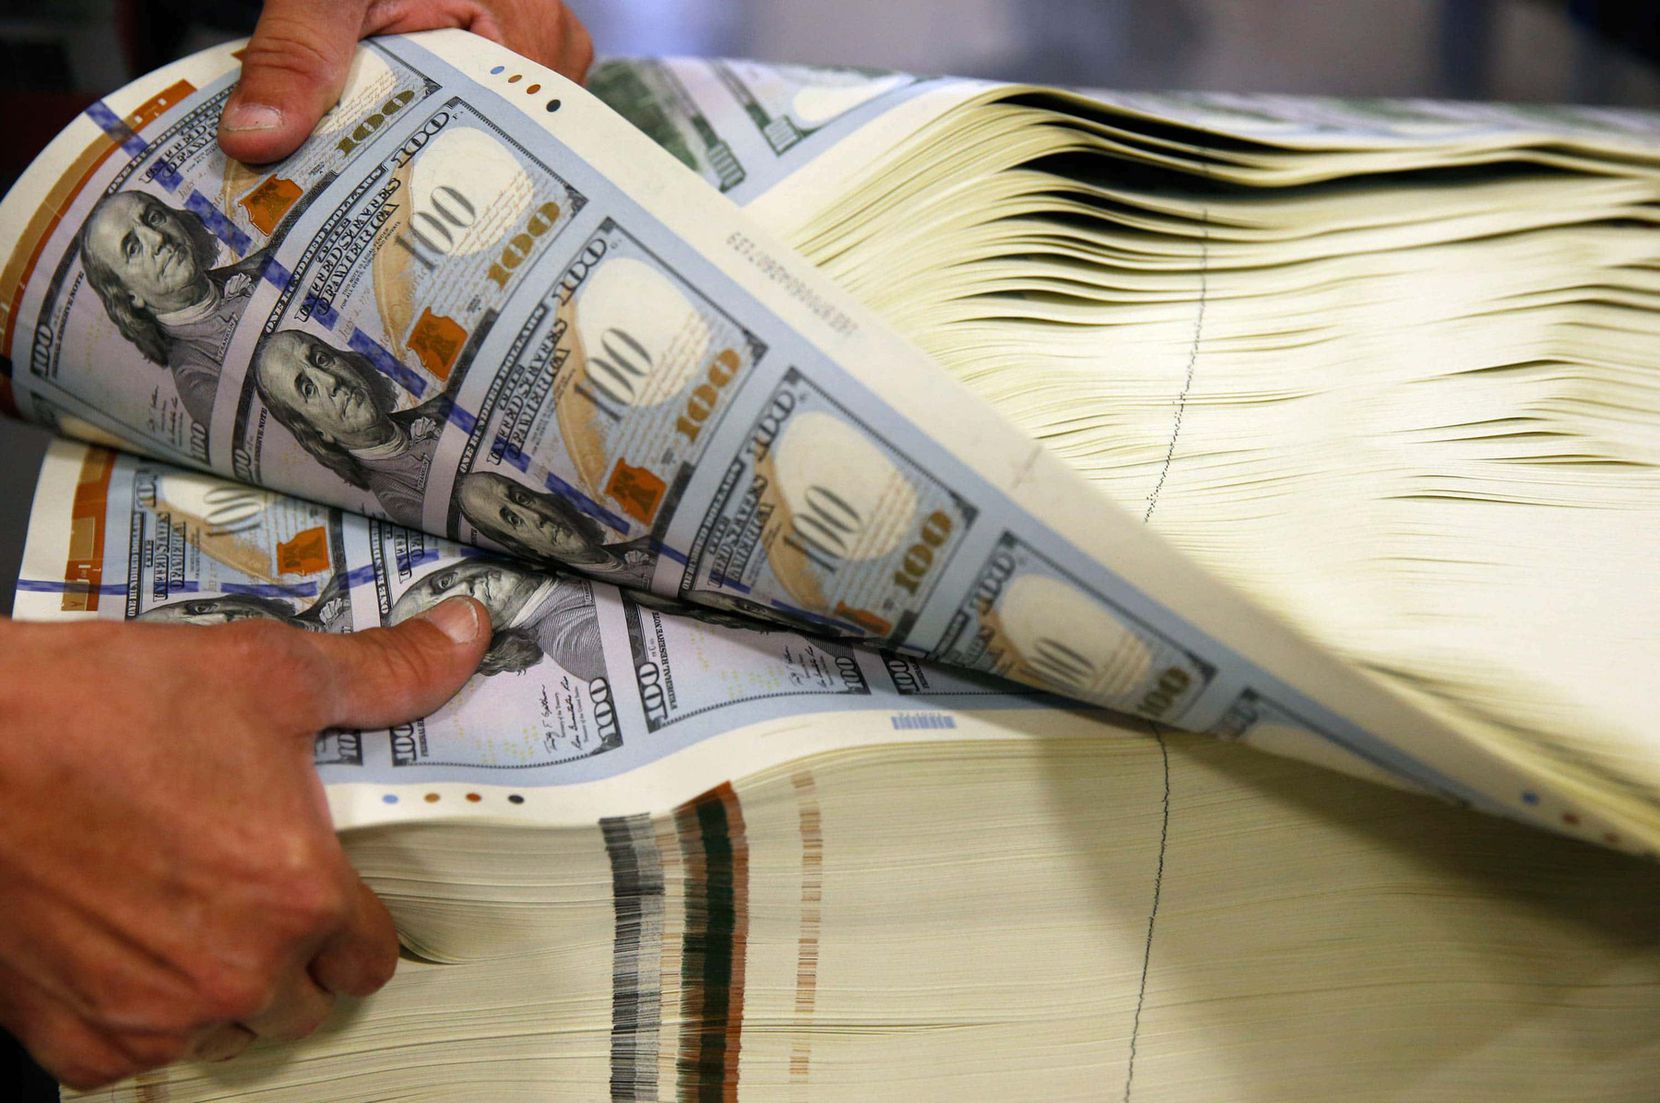 Juan Reyna aerates a stack of $100 notes to help keep them from causing a paper jam in the U.S. Bureau of Engraving and Printing's inspection machinery. A lot of money is printed there, but it's free to tour the facility.